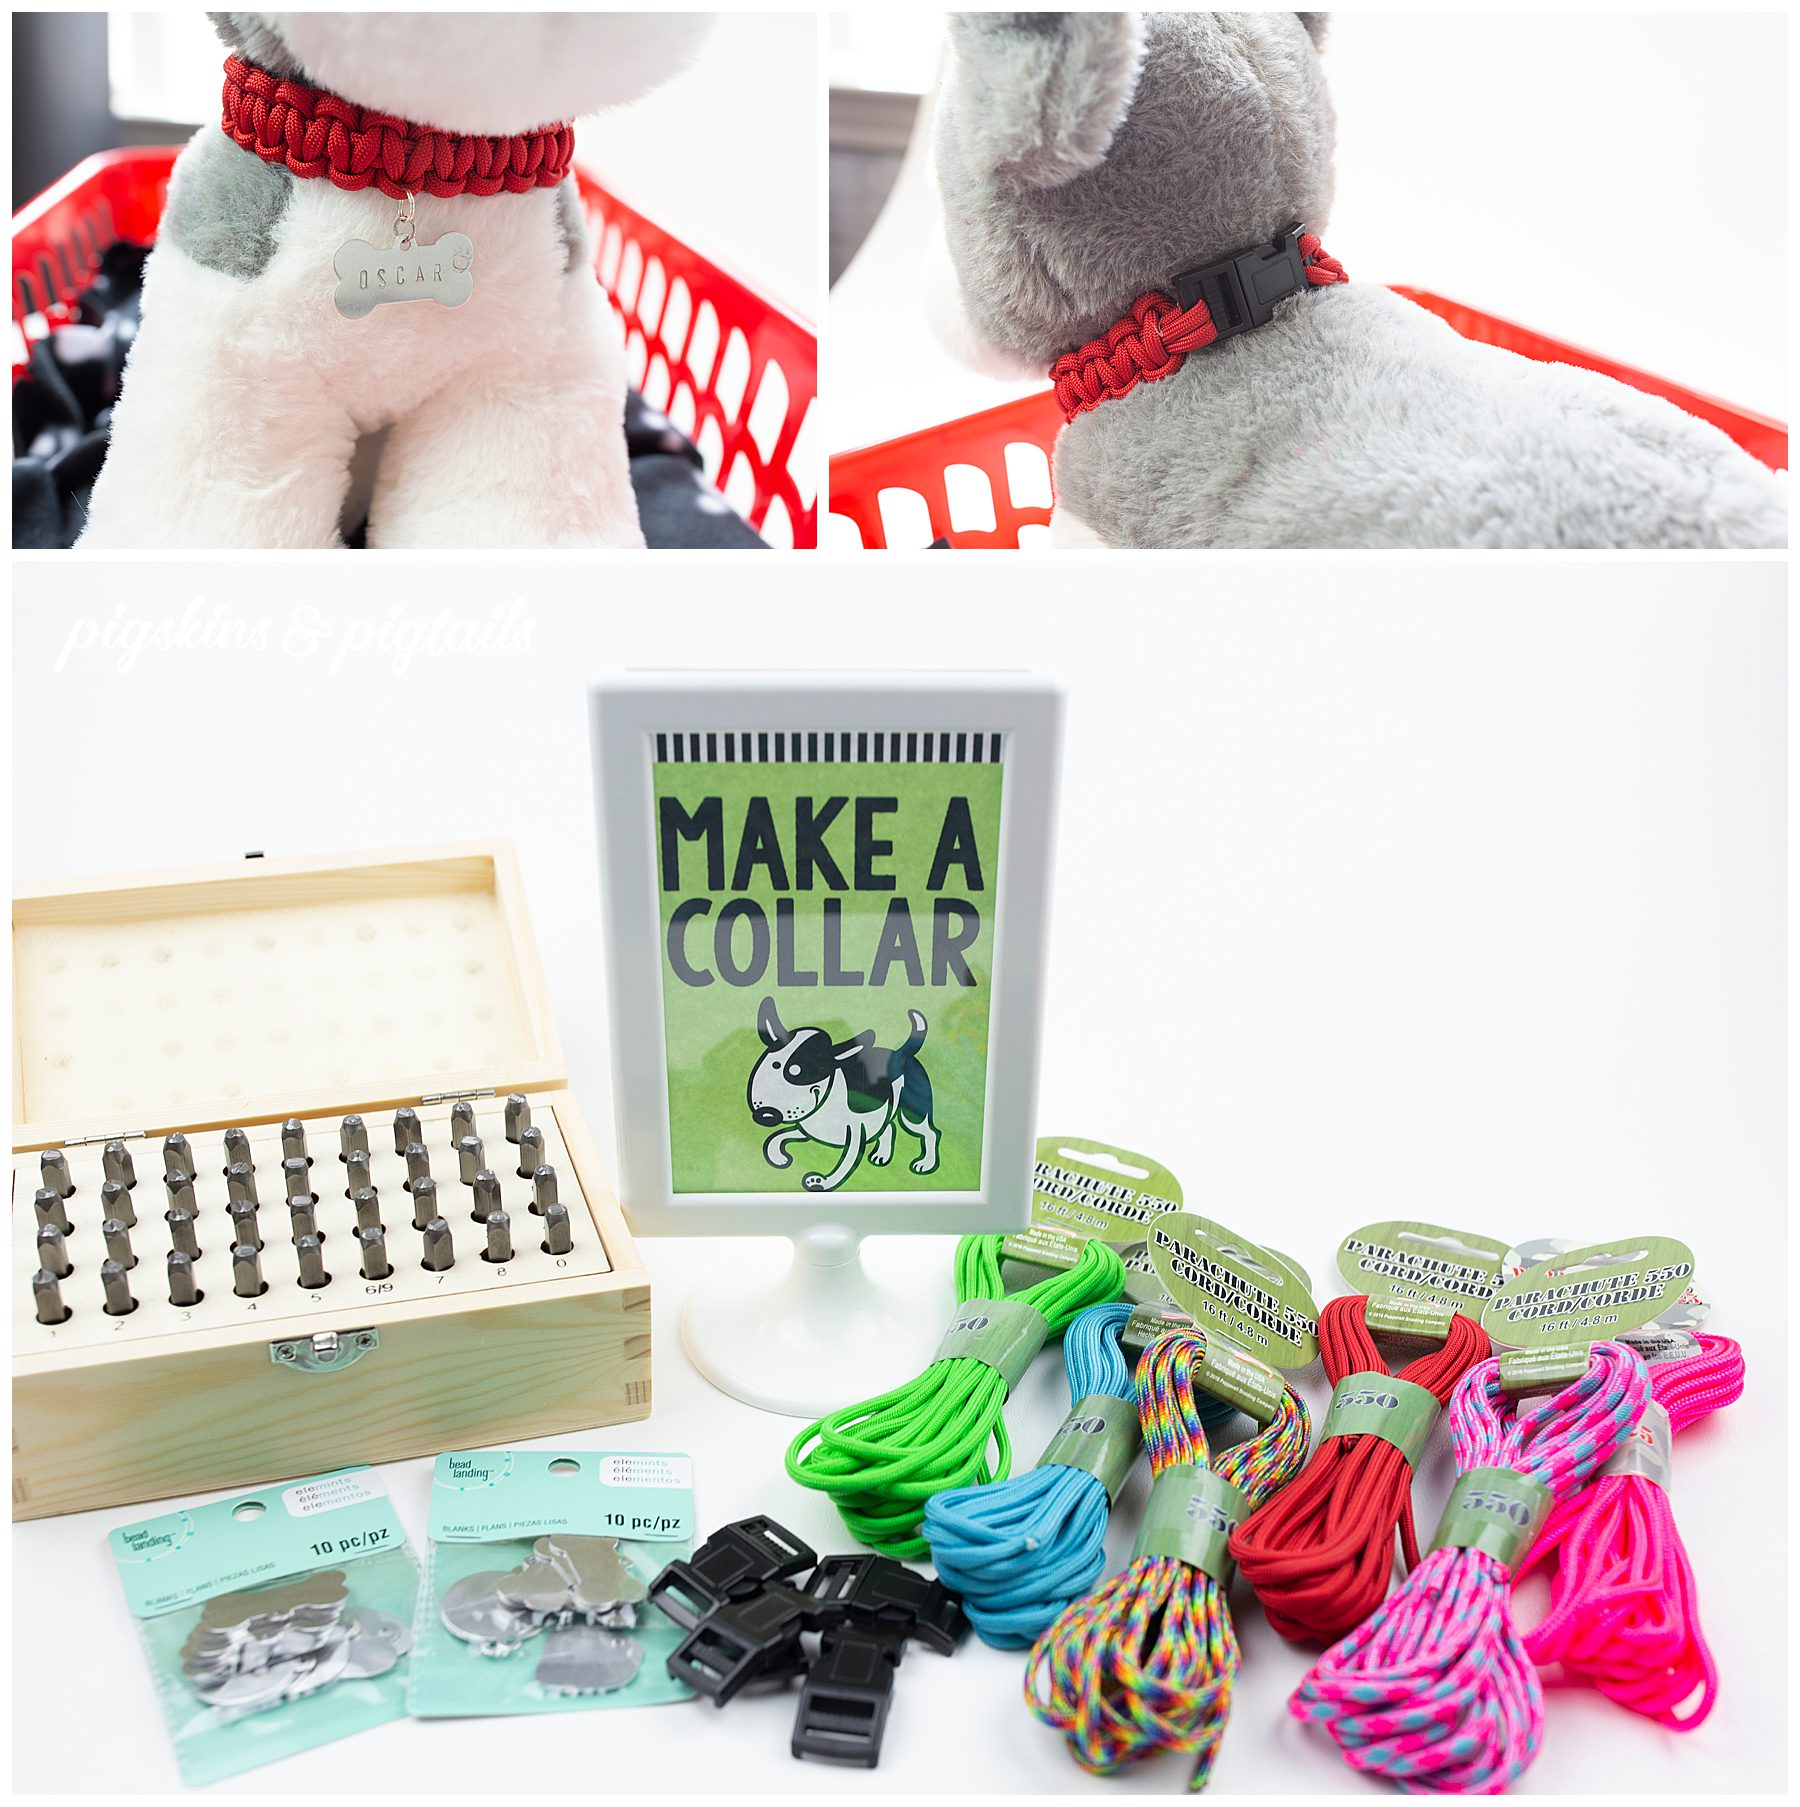 Make a dog collar for your stuffed animal